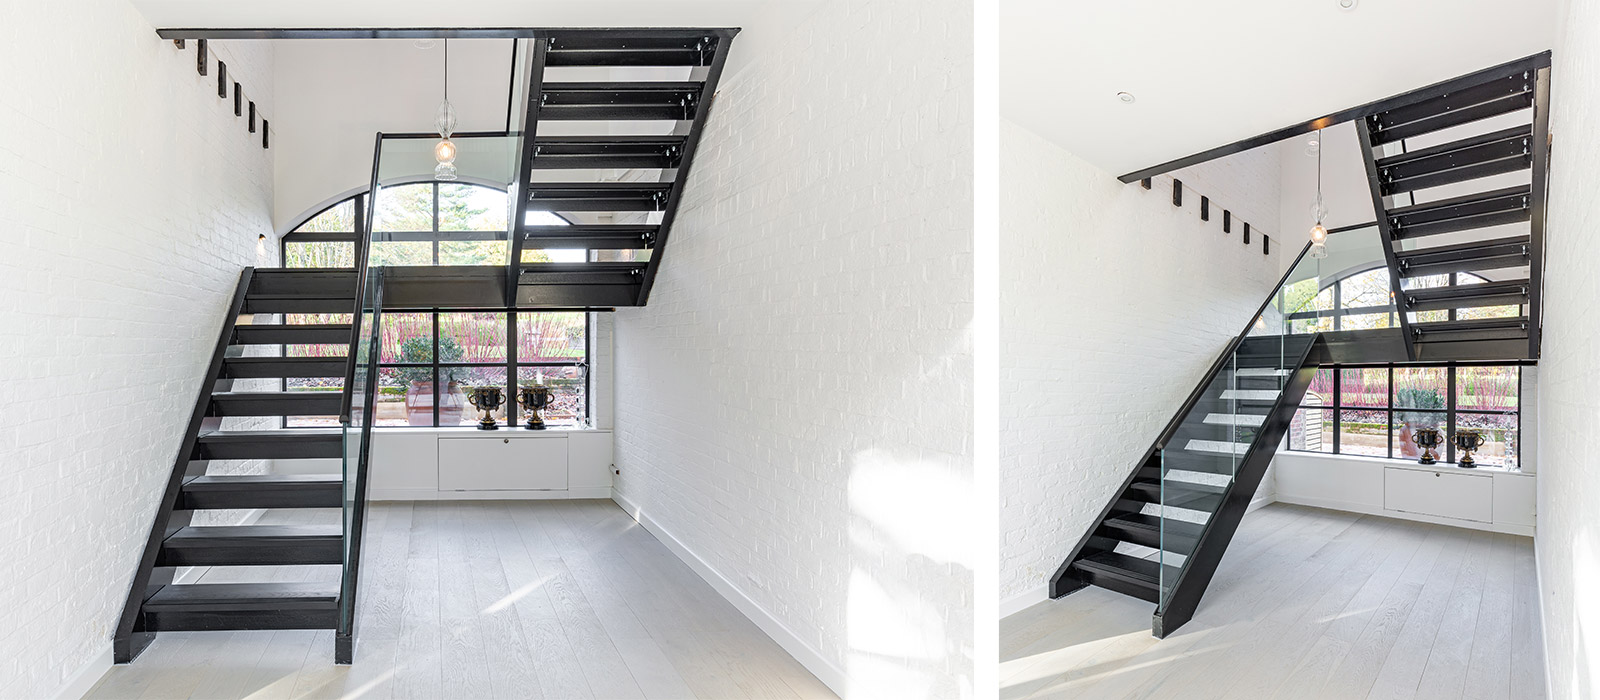 gyd-architecture | bespoke staircase